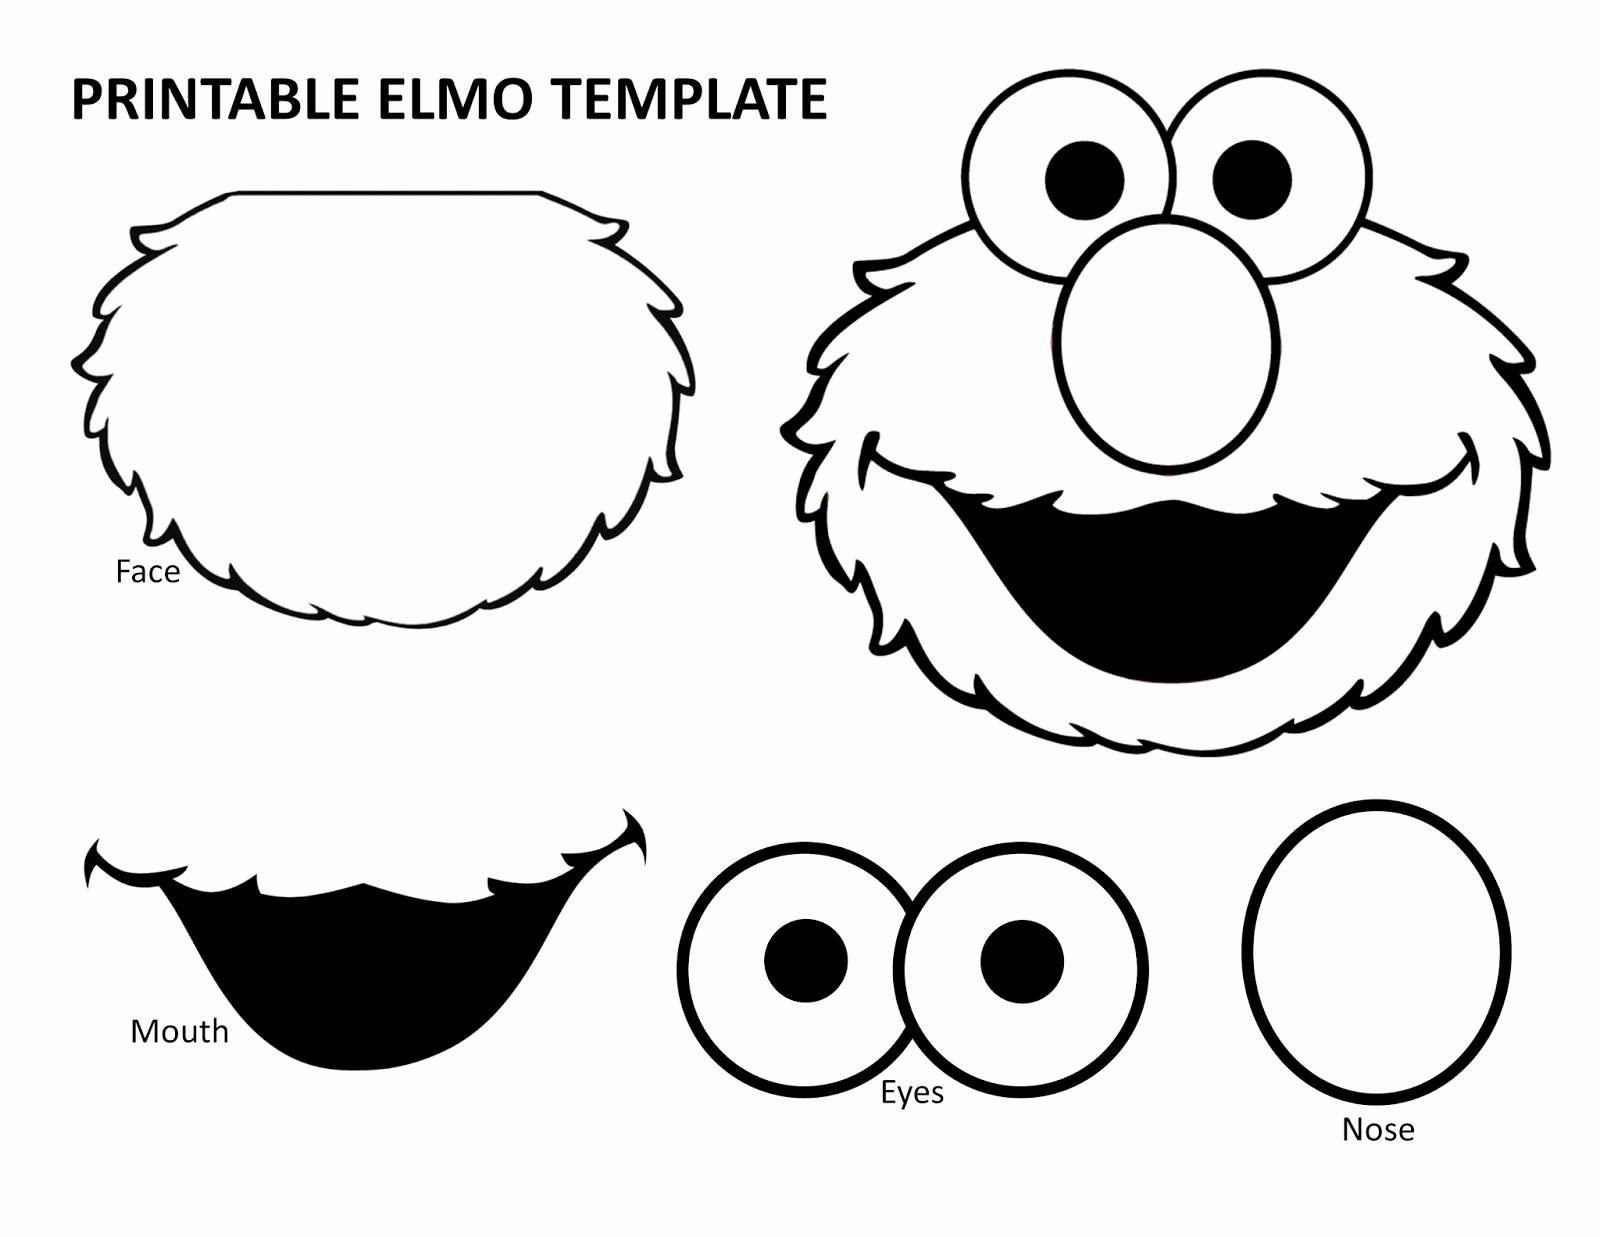 Elmo Face Template Elegant Elmo Face Template Image Collections